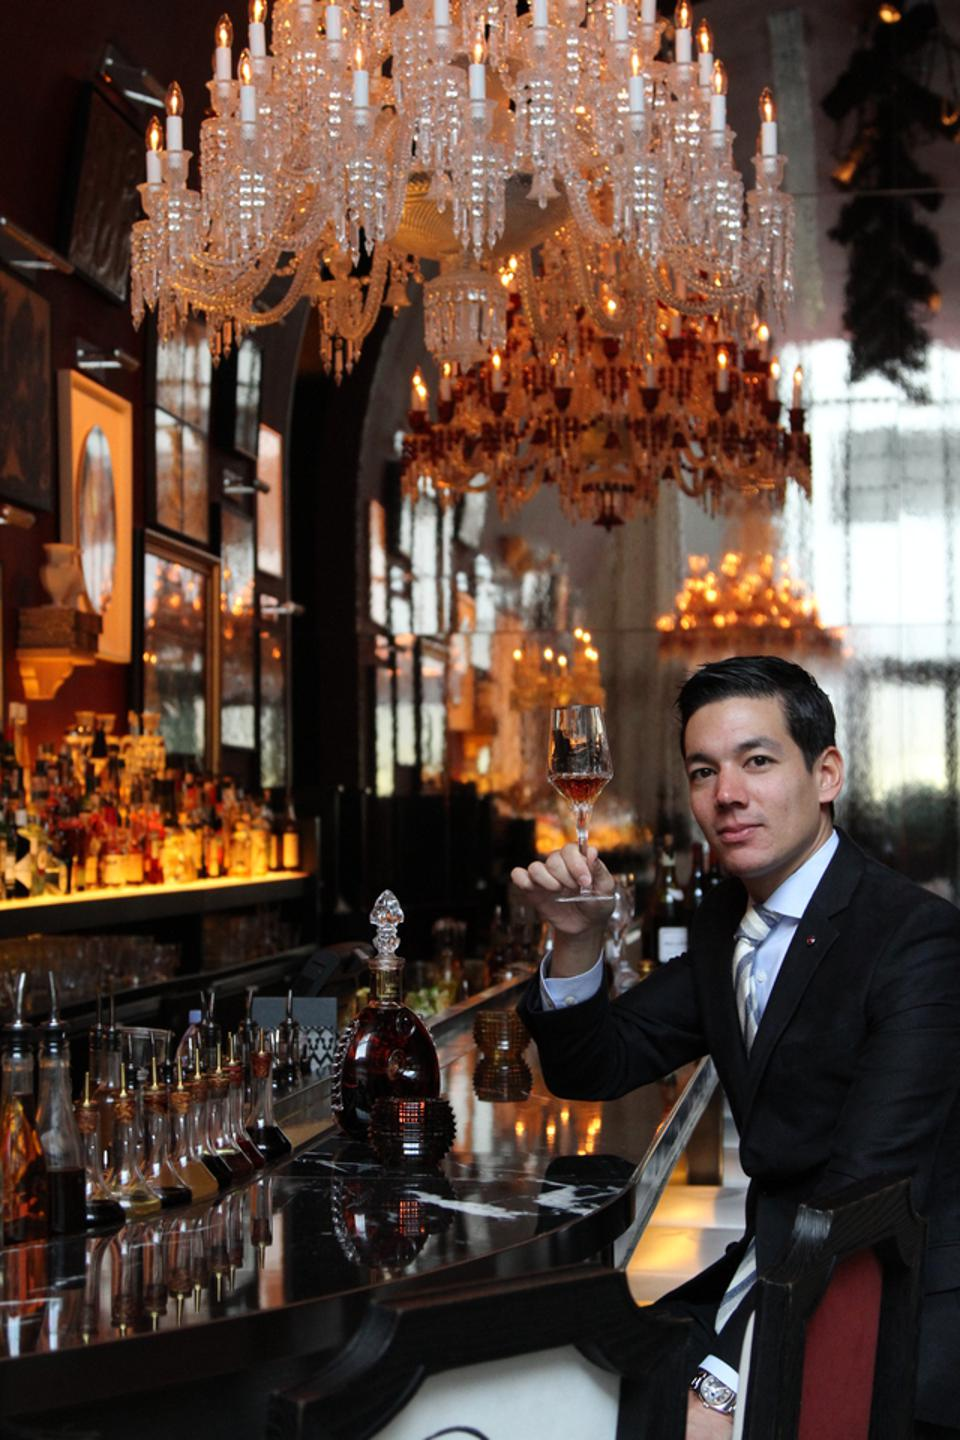 Matthieu Yamoum at the Baccarat Hotel's bar.